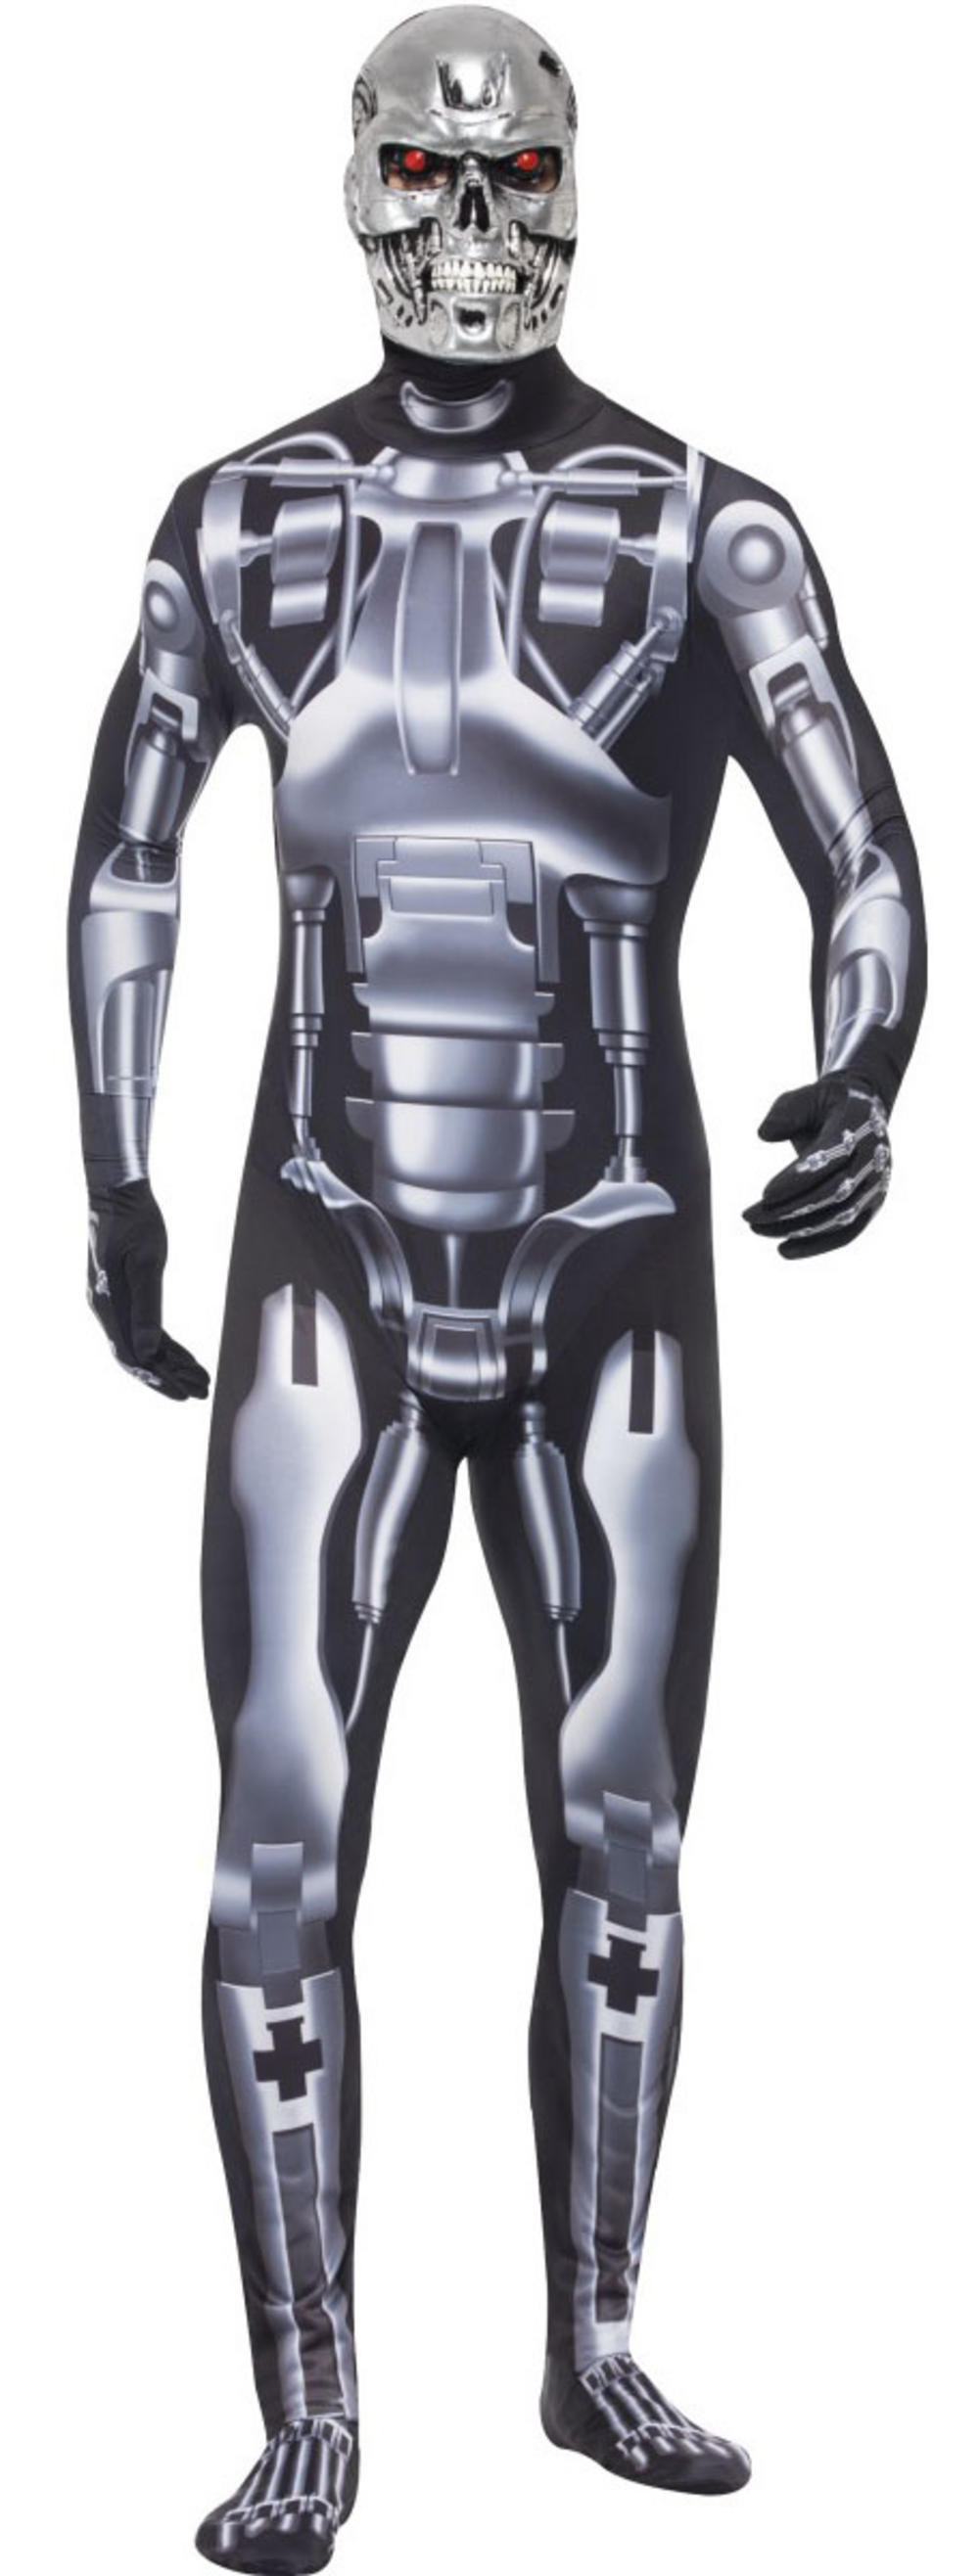 Terminator Endoskeleton Bodysuit Mens Fancy Dress Movie Character Costume Outfit